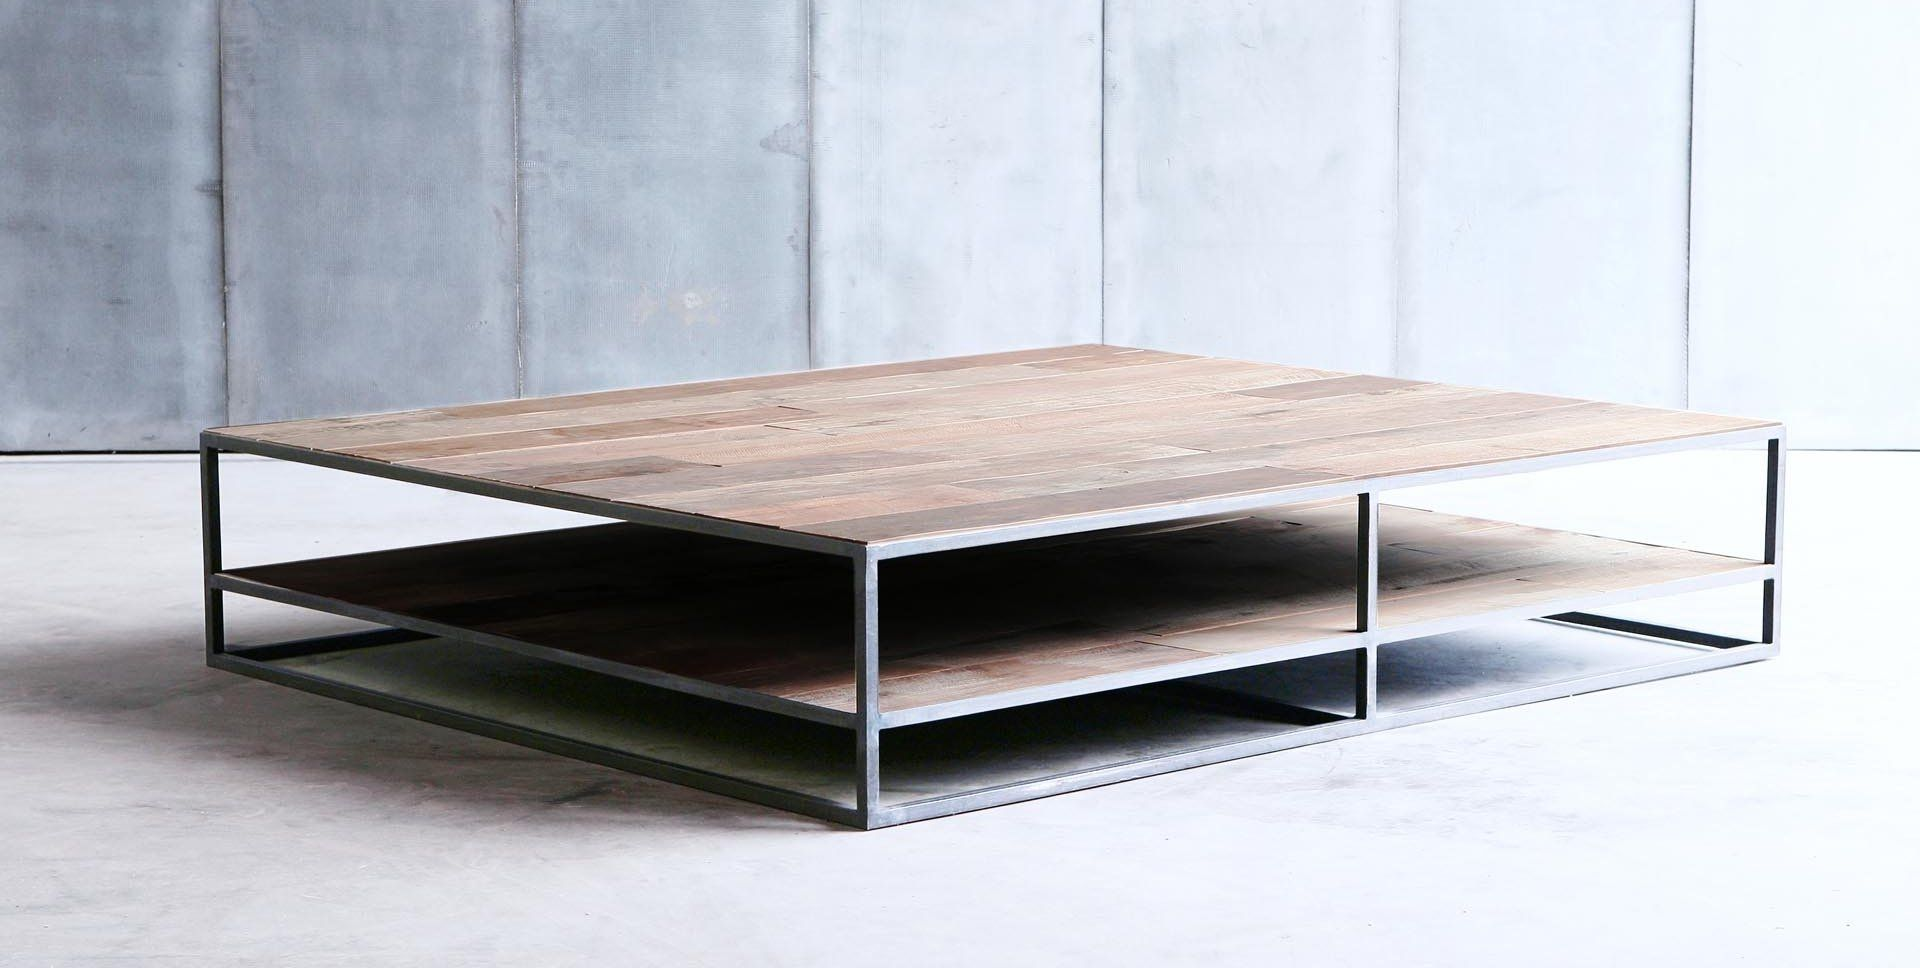 Table De Salon Industriel # Grande Table Basse Carre Indus